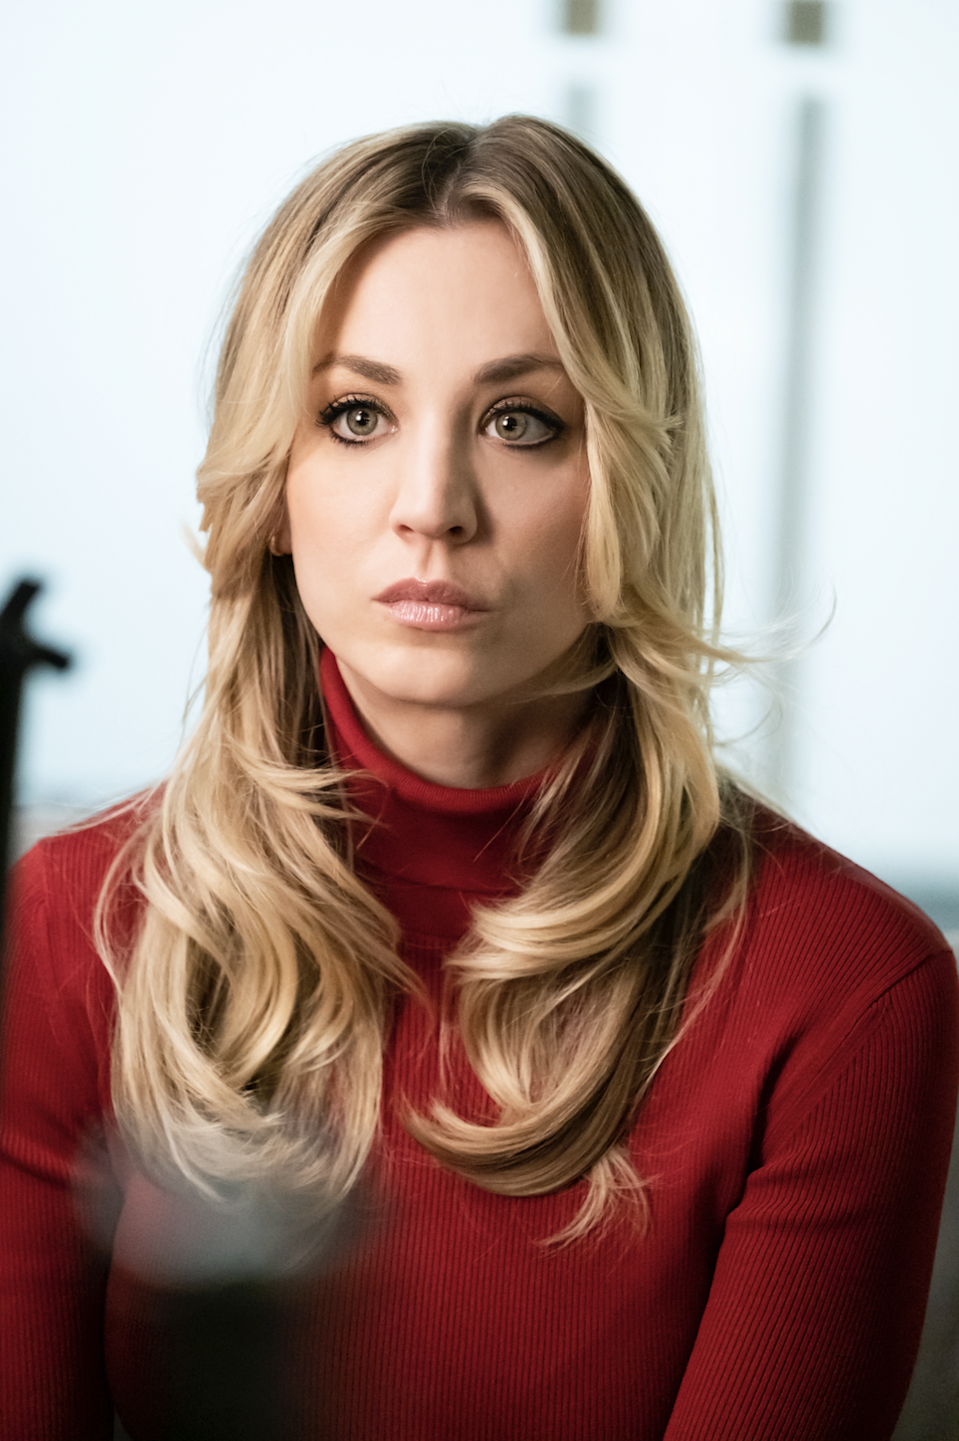 """<h1 class=""""title"""">The-Flight-Attendant-Kaley-Cuoco-vertical-image-red-turtleneck.jpg</h1><div class=""""caption"""">Kaley Cuoco as """"Cassie Bowden"""" in HBO Max's <em>The Flight Attendant</em></div><cite class=""""credit"""">HBO Max</cite>"""